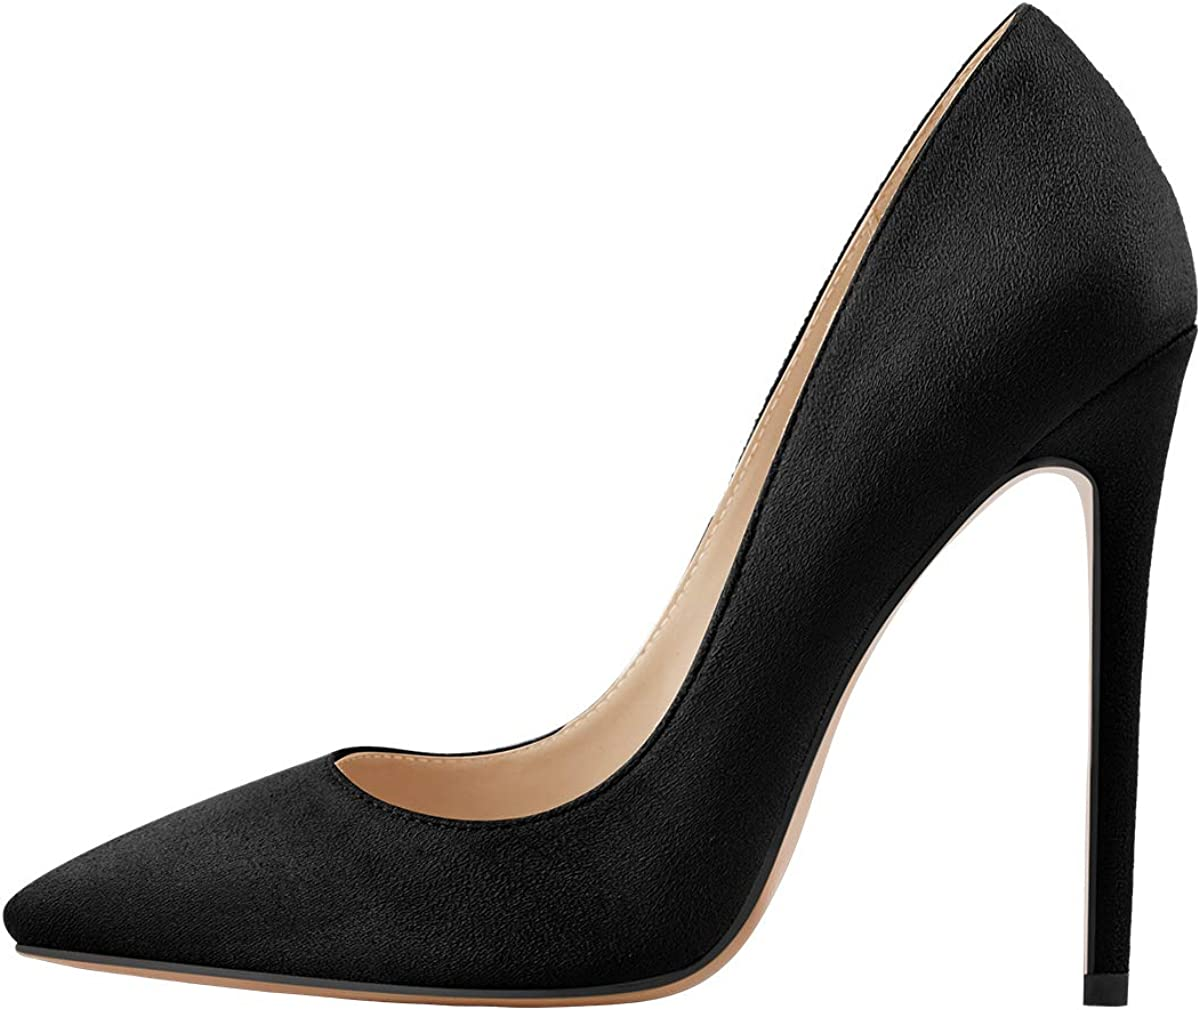 Richealnana Max 60% OFF Super special price Women's Classic Pumps Pointed High Toe Heels Sexy